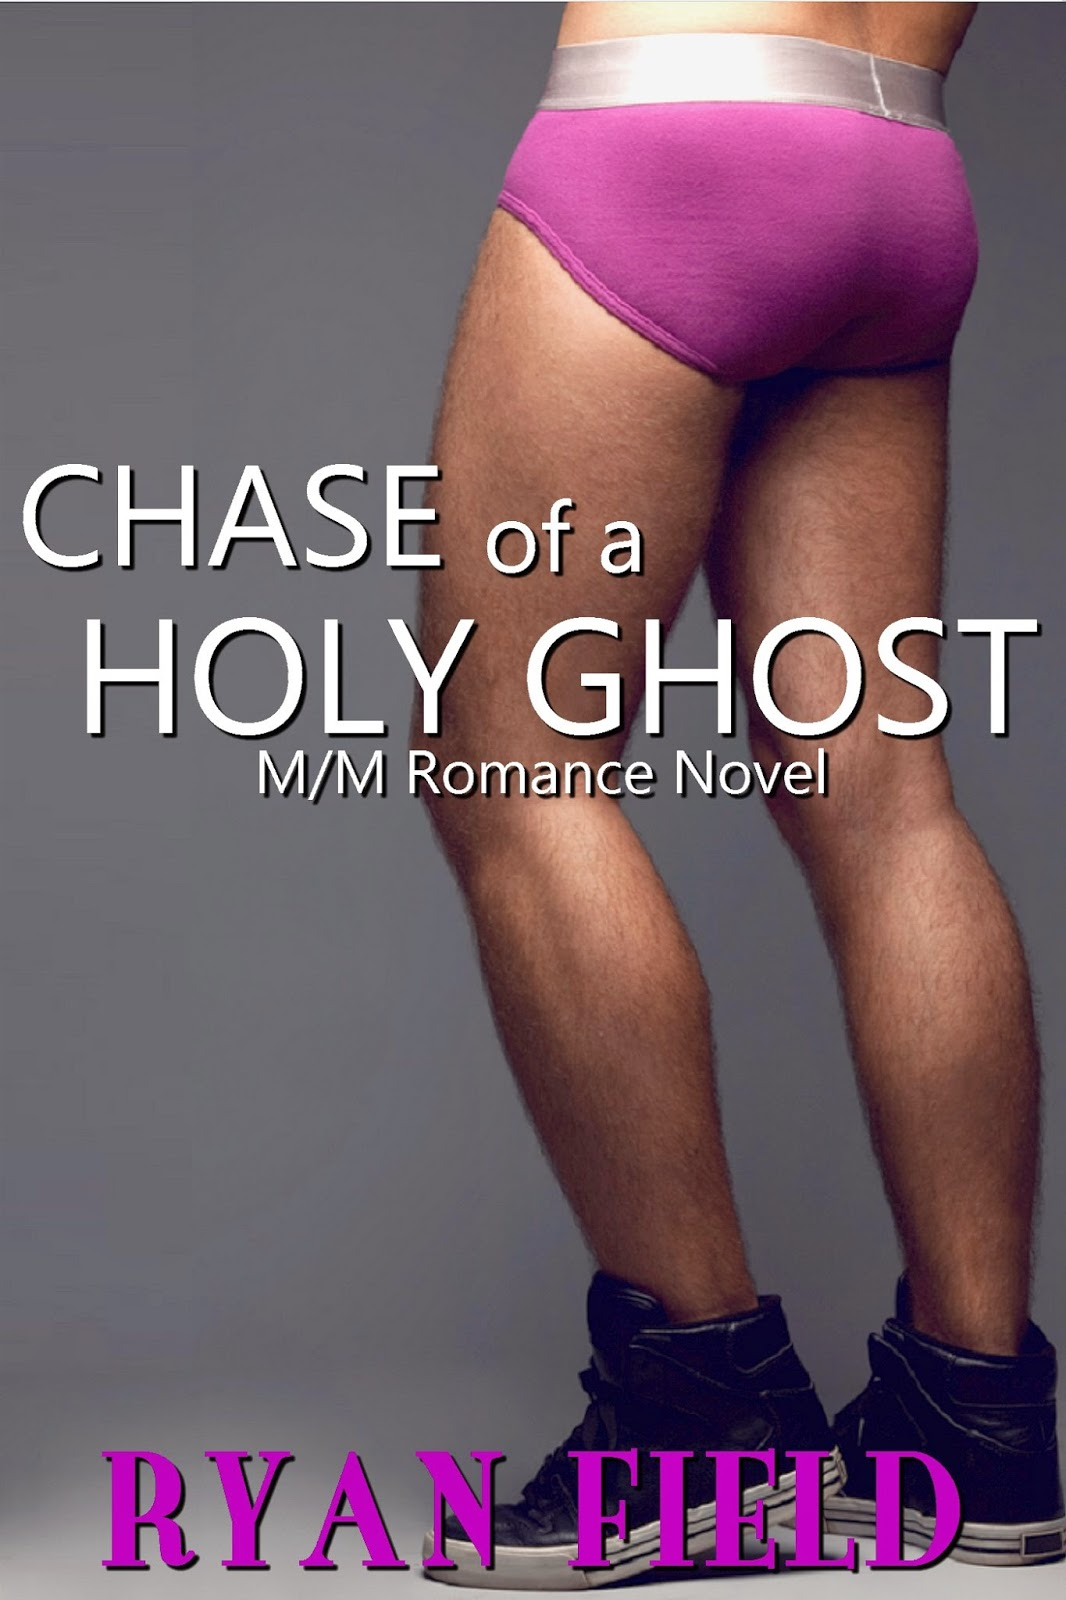 http://www.amazon.com/Chase-Holy-Ghost-Ryan-Field-ebook/dp/B00KJ0NREW/ref=sr_1_1?ie=UTF8&qid=1401126652&sr=8-1&keywords=chase+of+a+holy+ghost+by+ryan+field